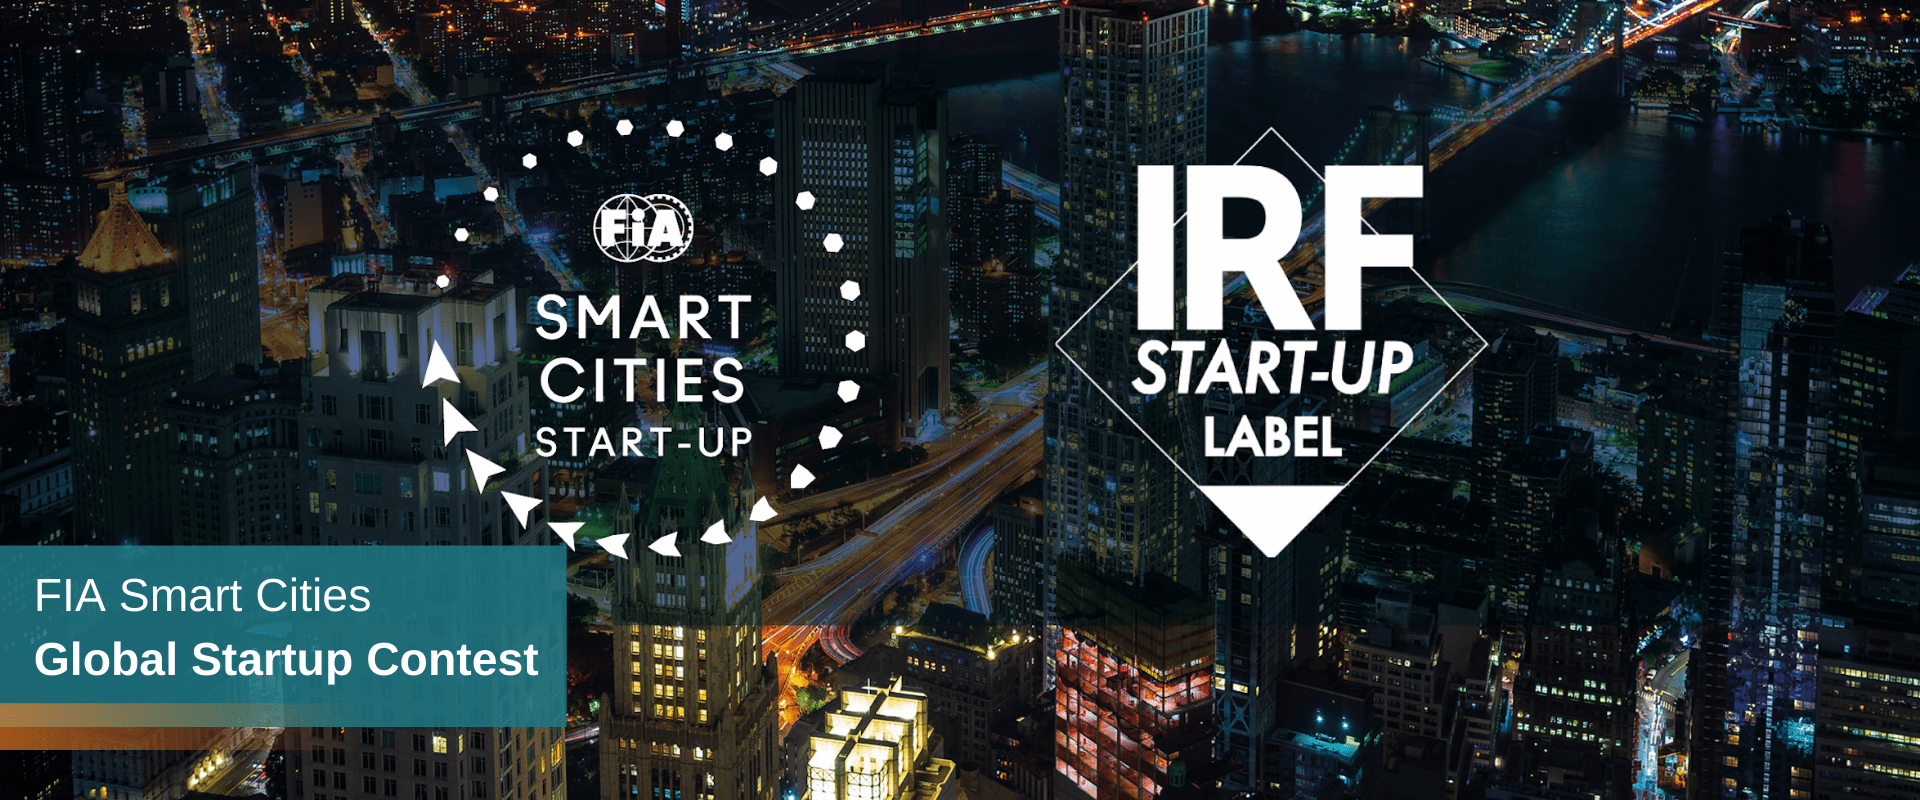 FIA Smart Cities Global Startup Contest